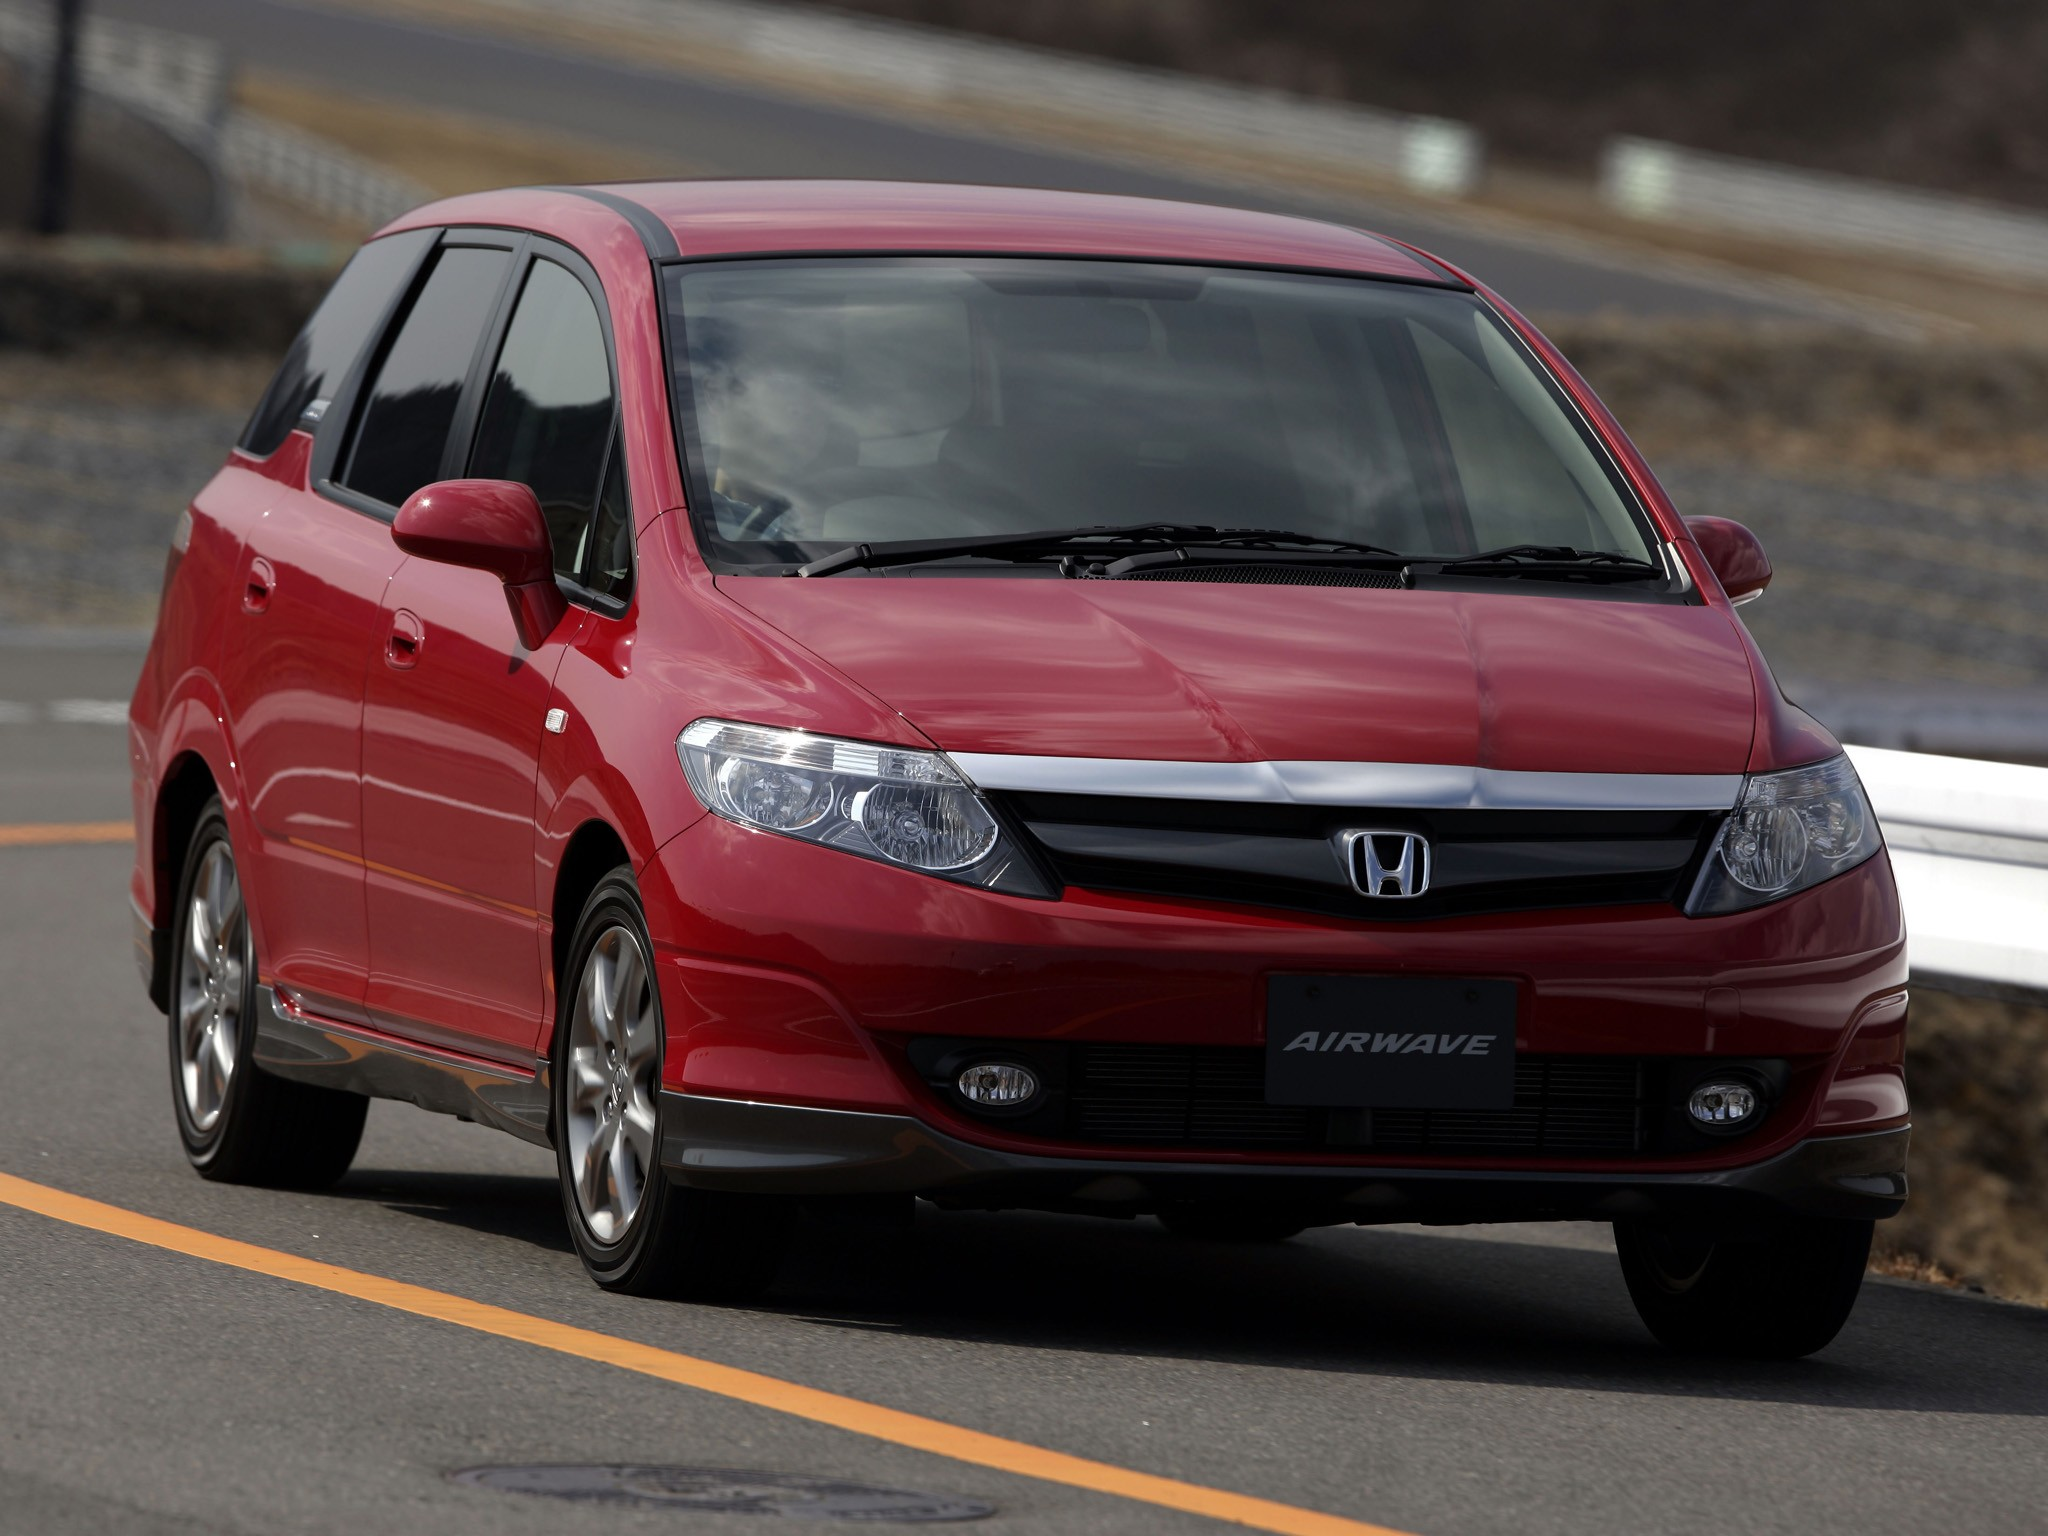 Hondacivictypes besides  additionally  together with Civic Int further Honda Civic Type R. on 2006 honda civic hybrid engine